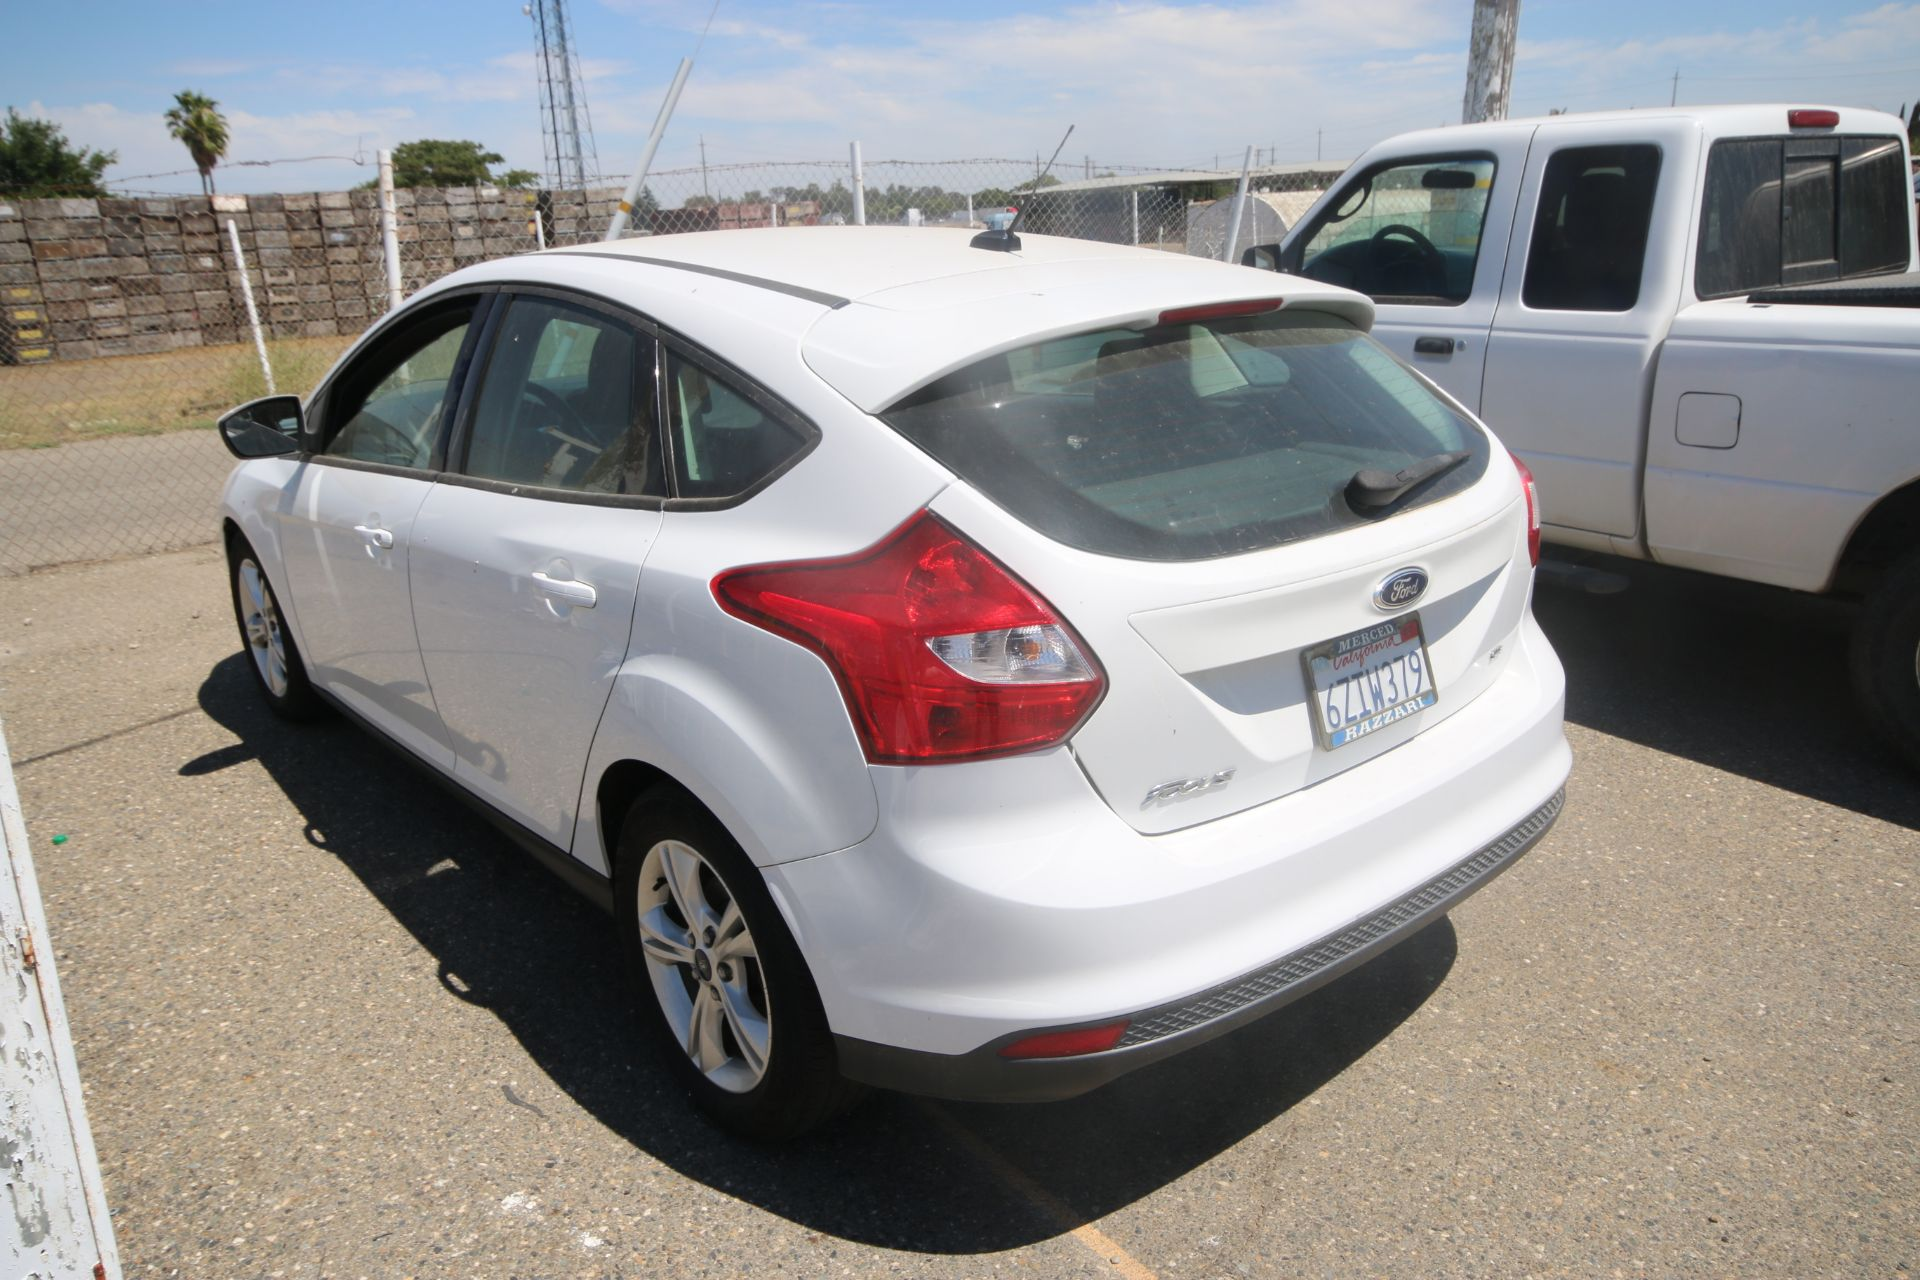 2012 White Ford Focus SE Hatchback 4D, VIN #: 1FAHP3K27CL423326, with 116,017 Miles, with 4-Doors, - Image 4 of 26